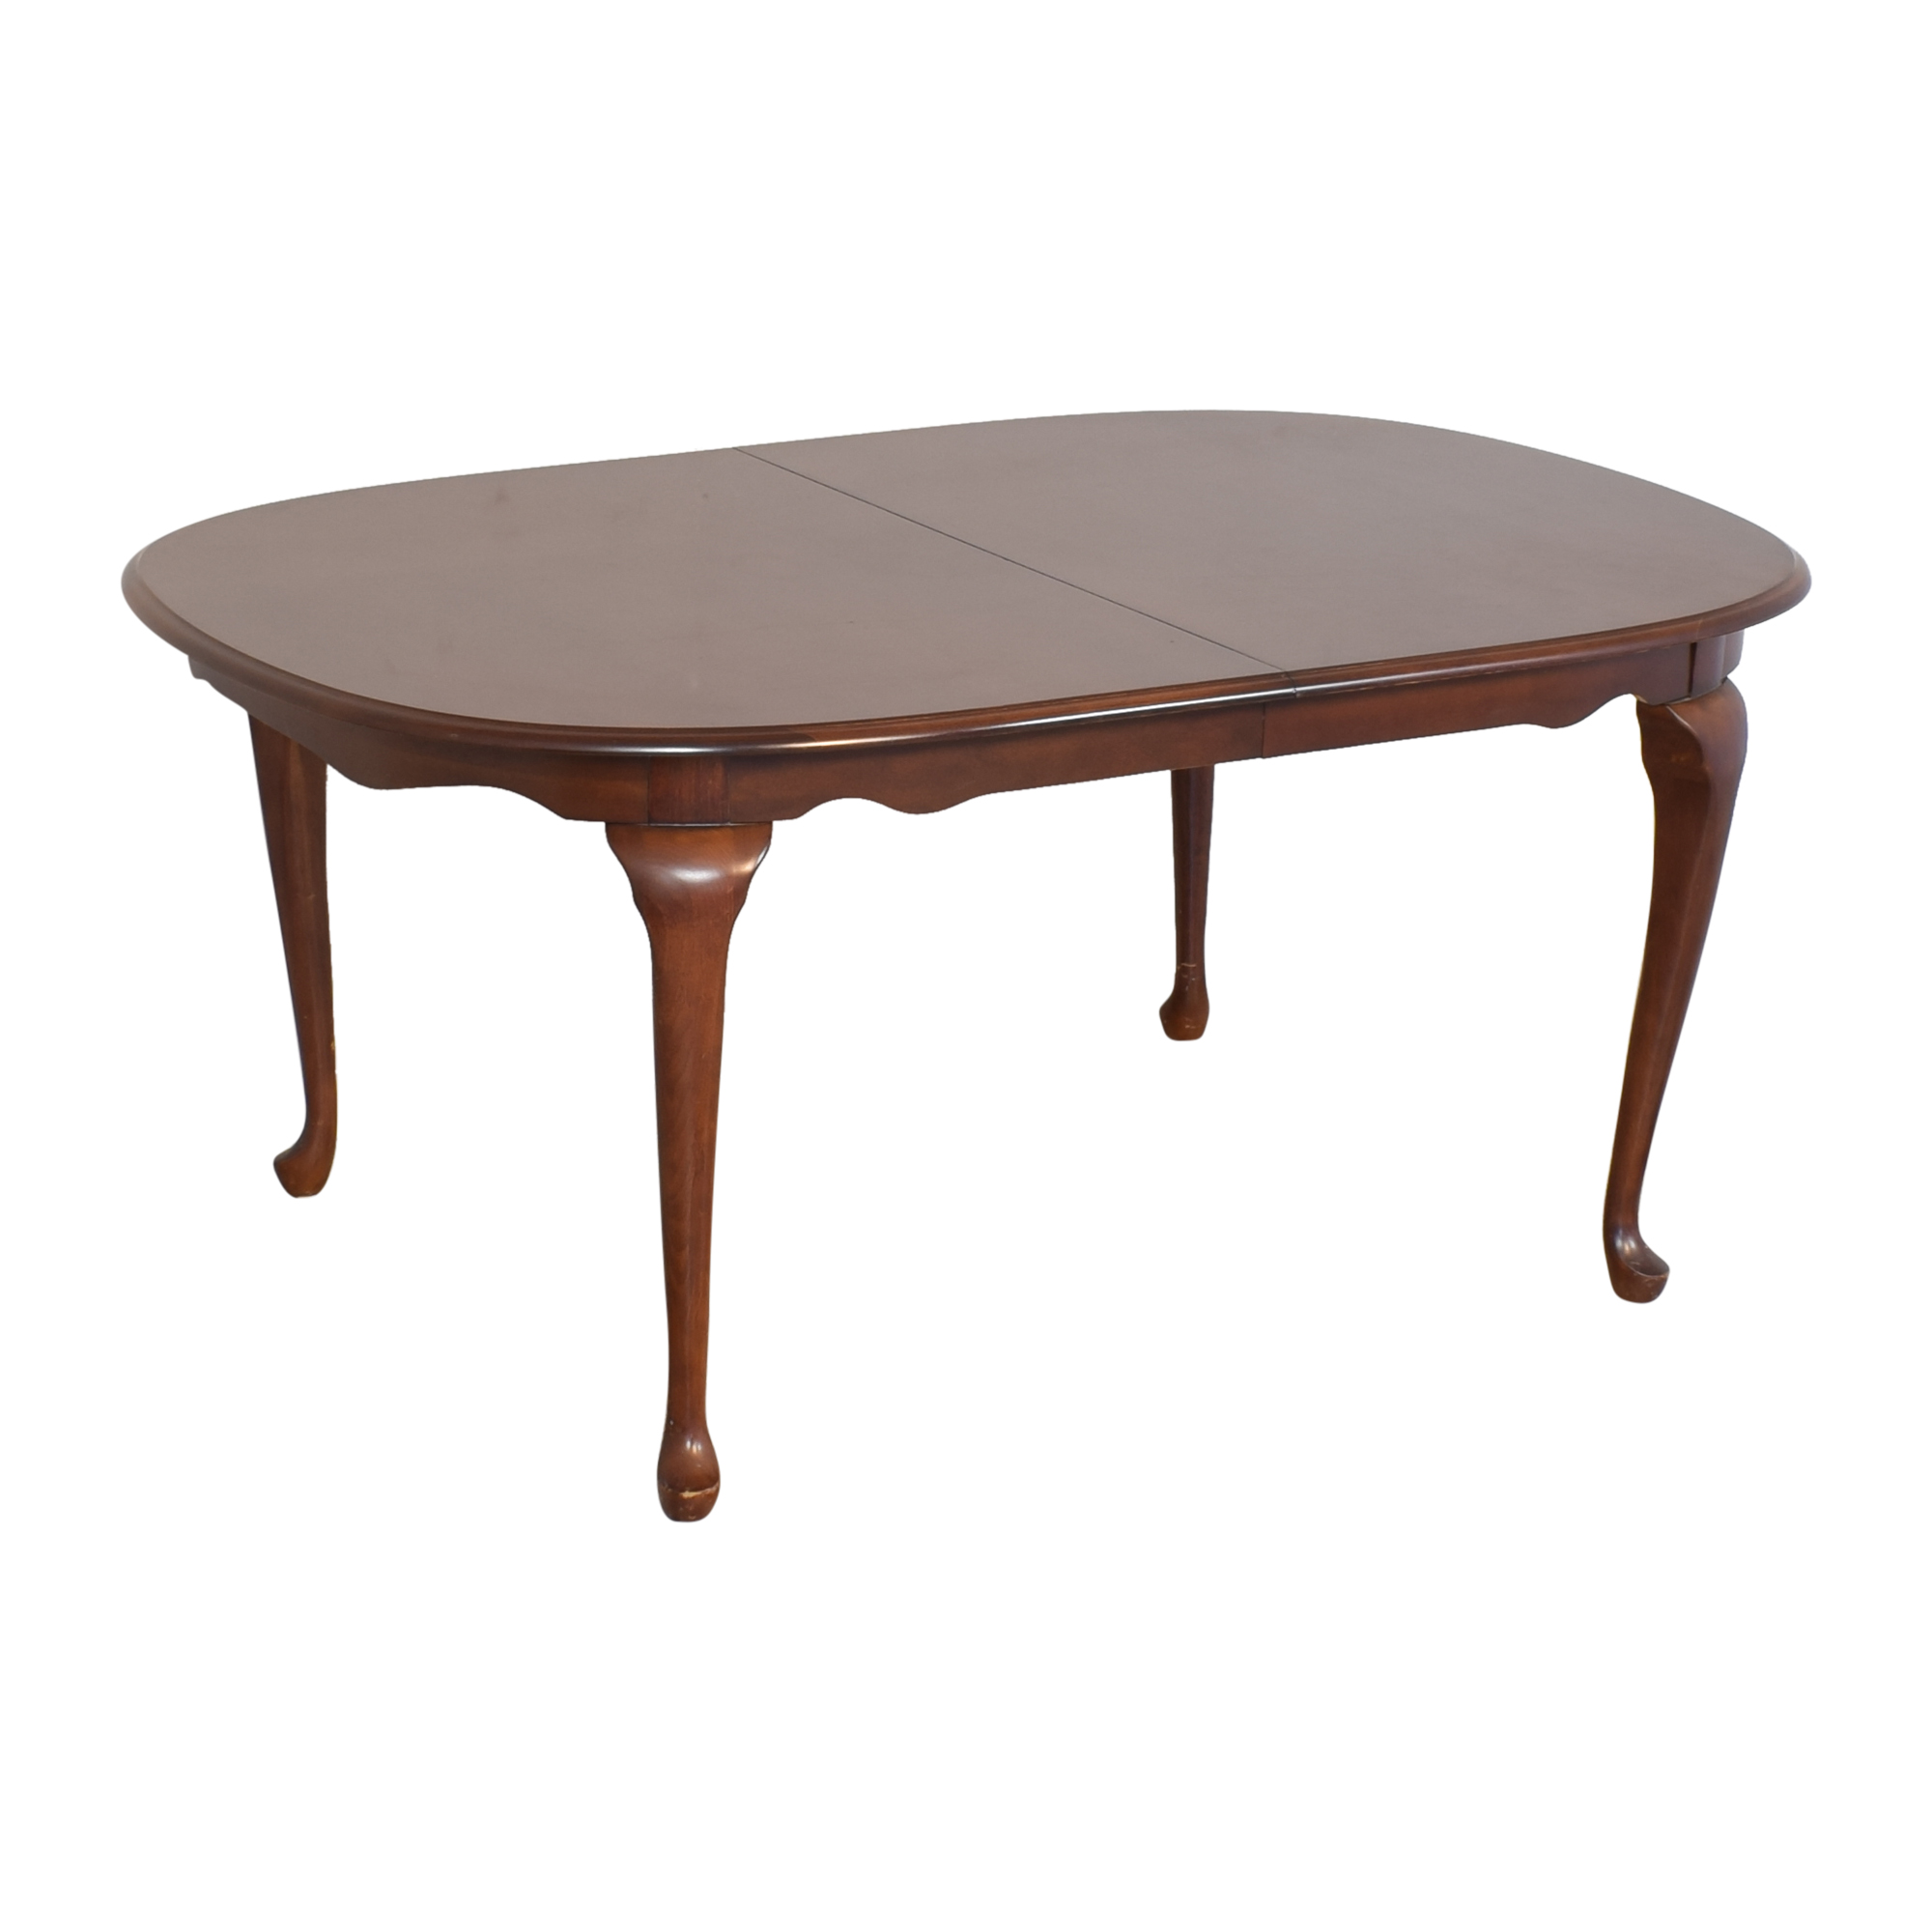 American Drew Extendable Oval Dining Table sale